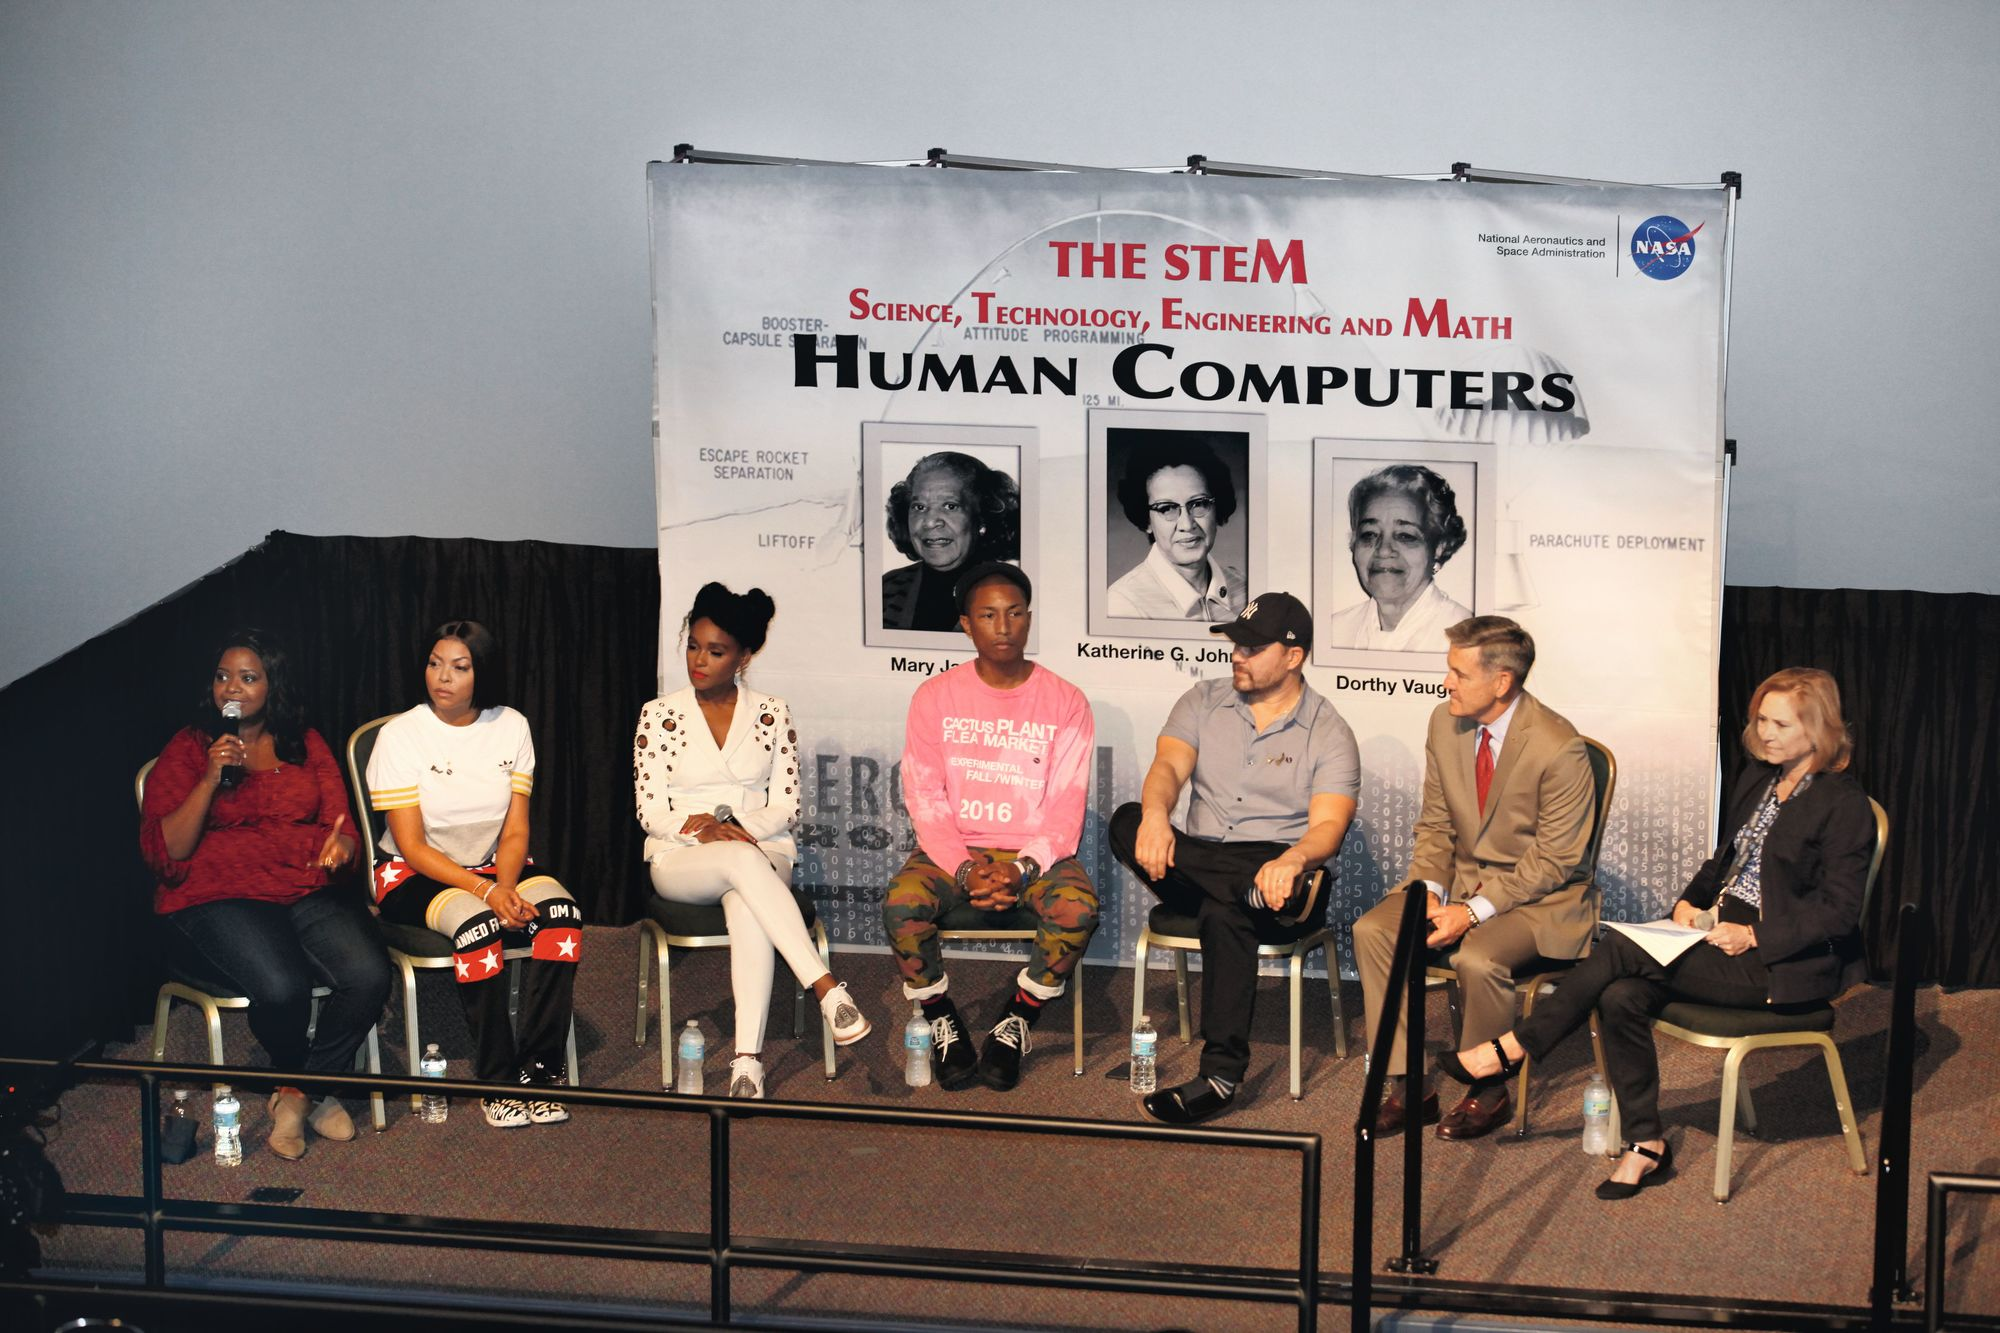 The cast and crew members of the movie Hidden Figures answer the audience's questions.